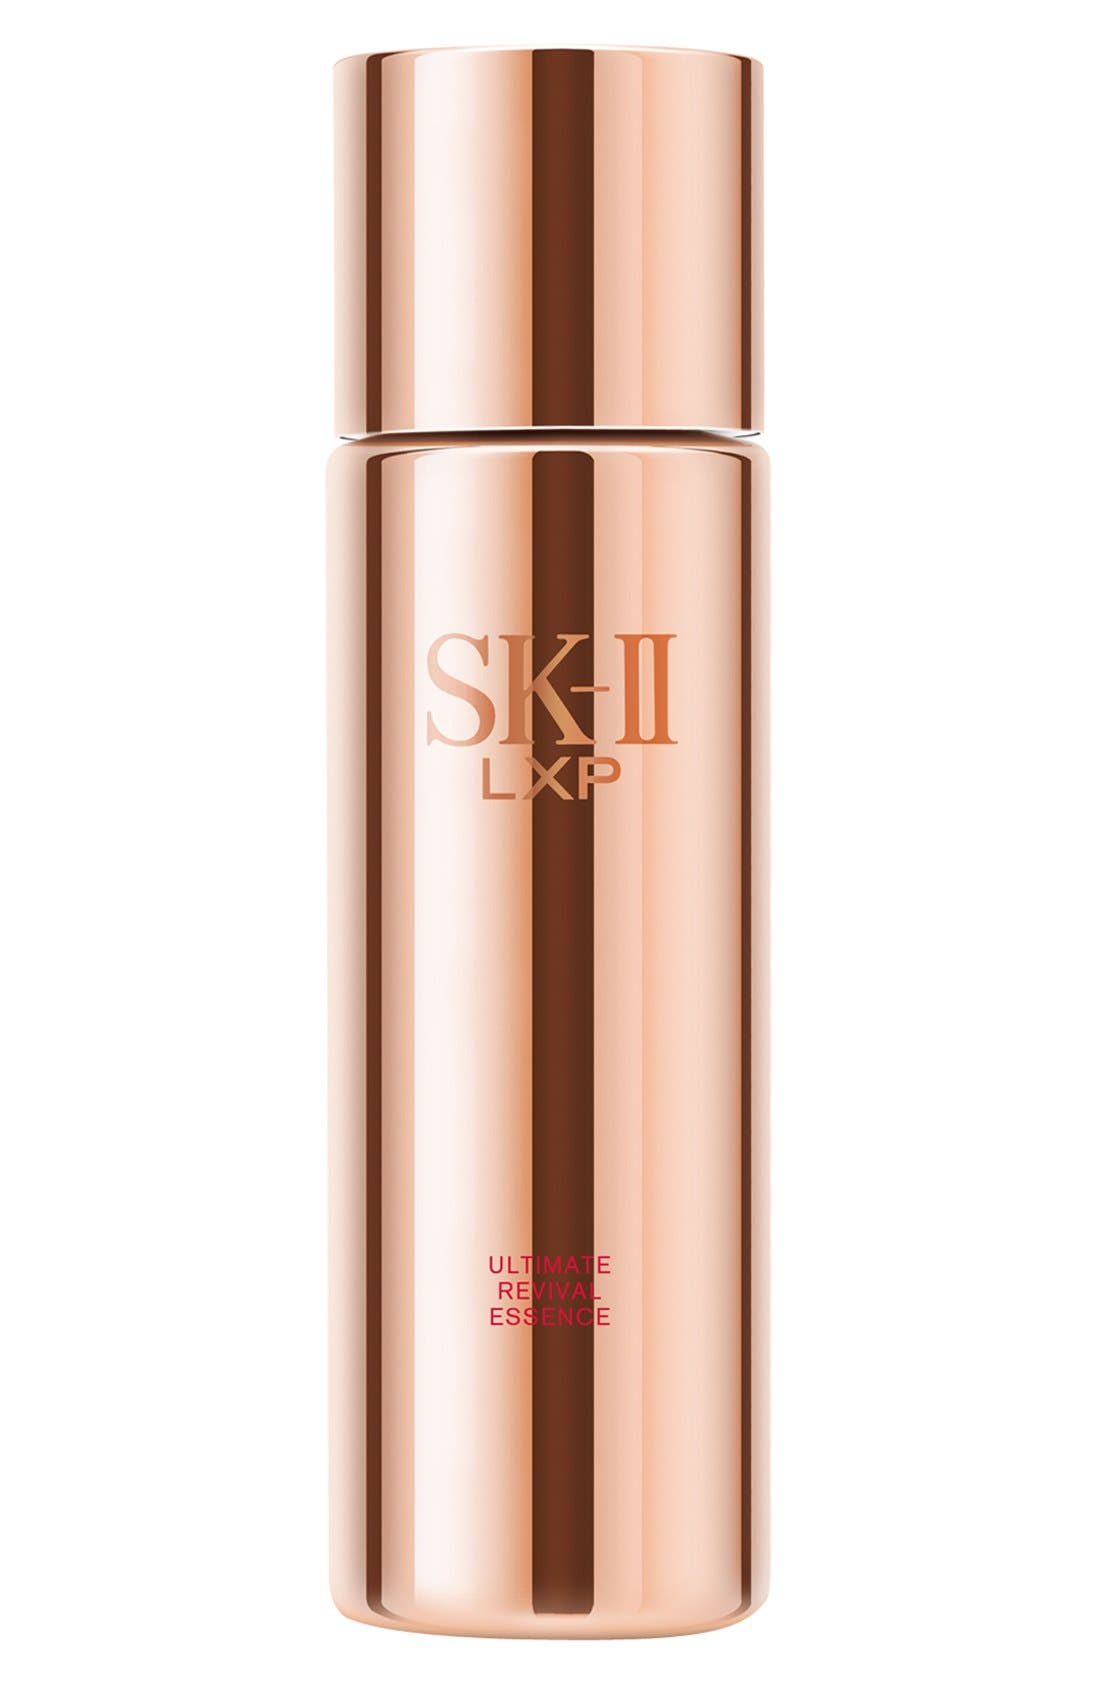 SK-II LXP Ultimate Revival Essence